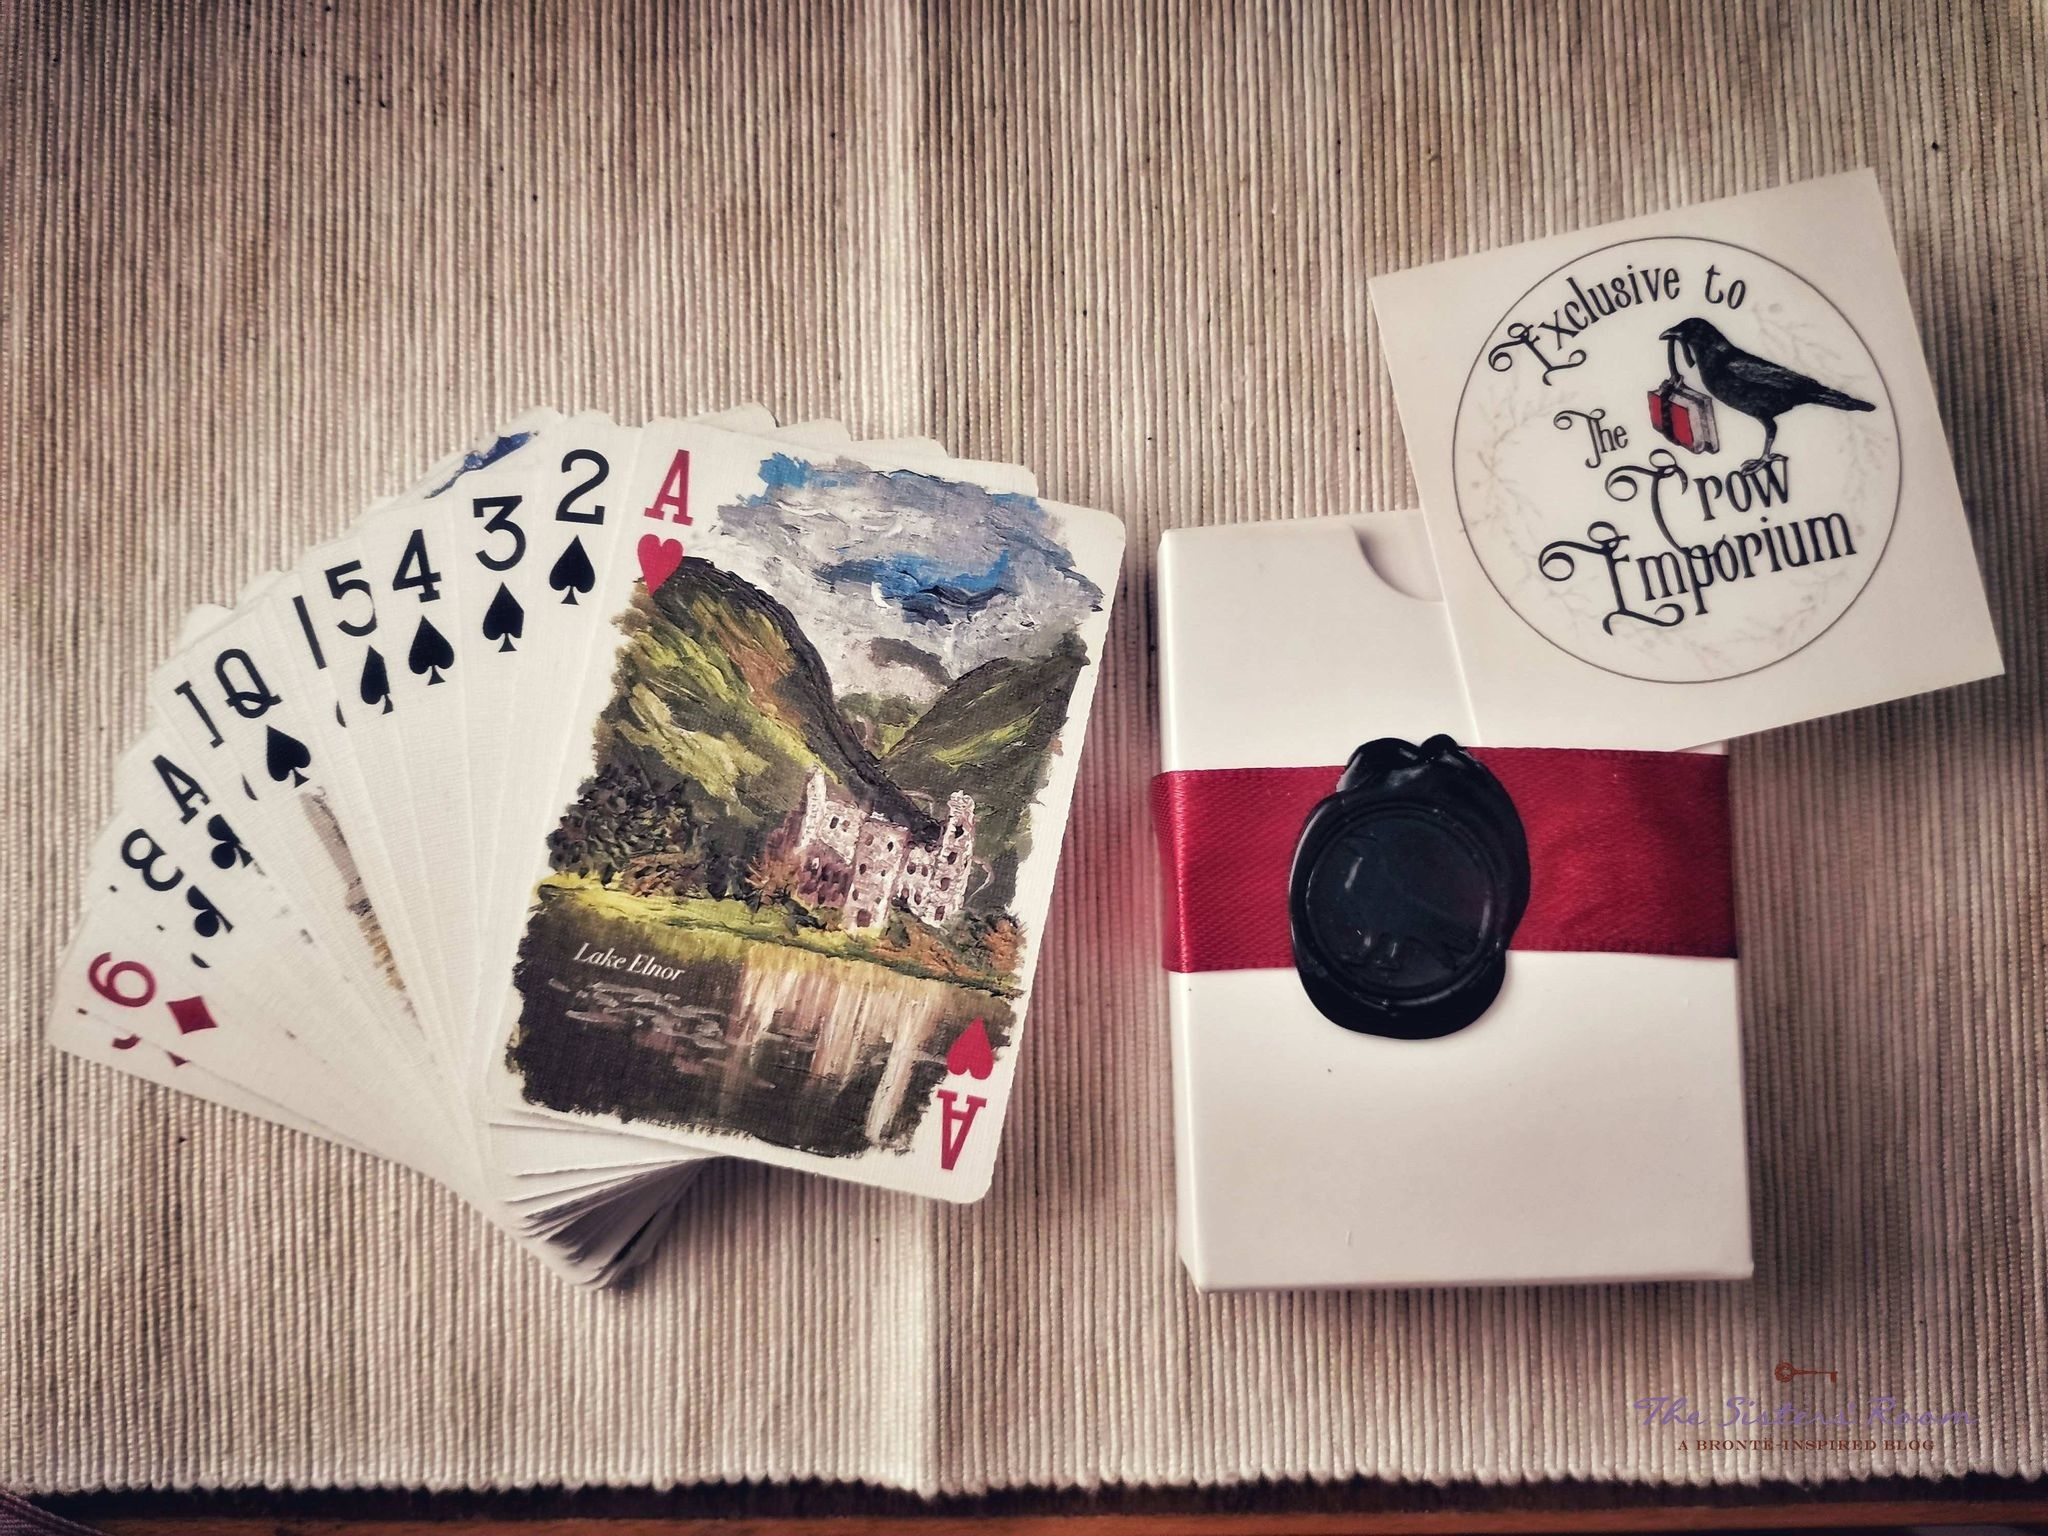 The Crow Emporium carte da gioco